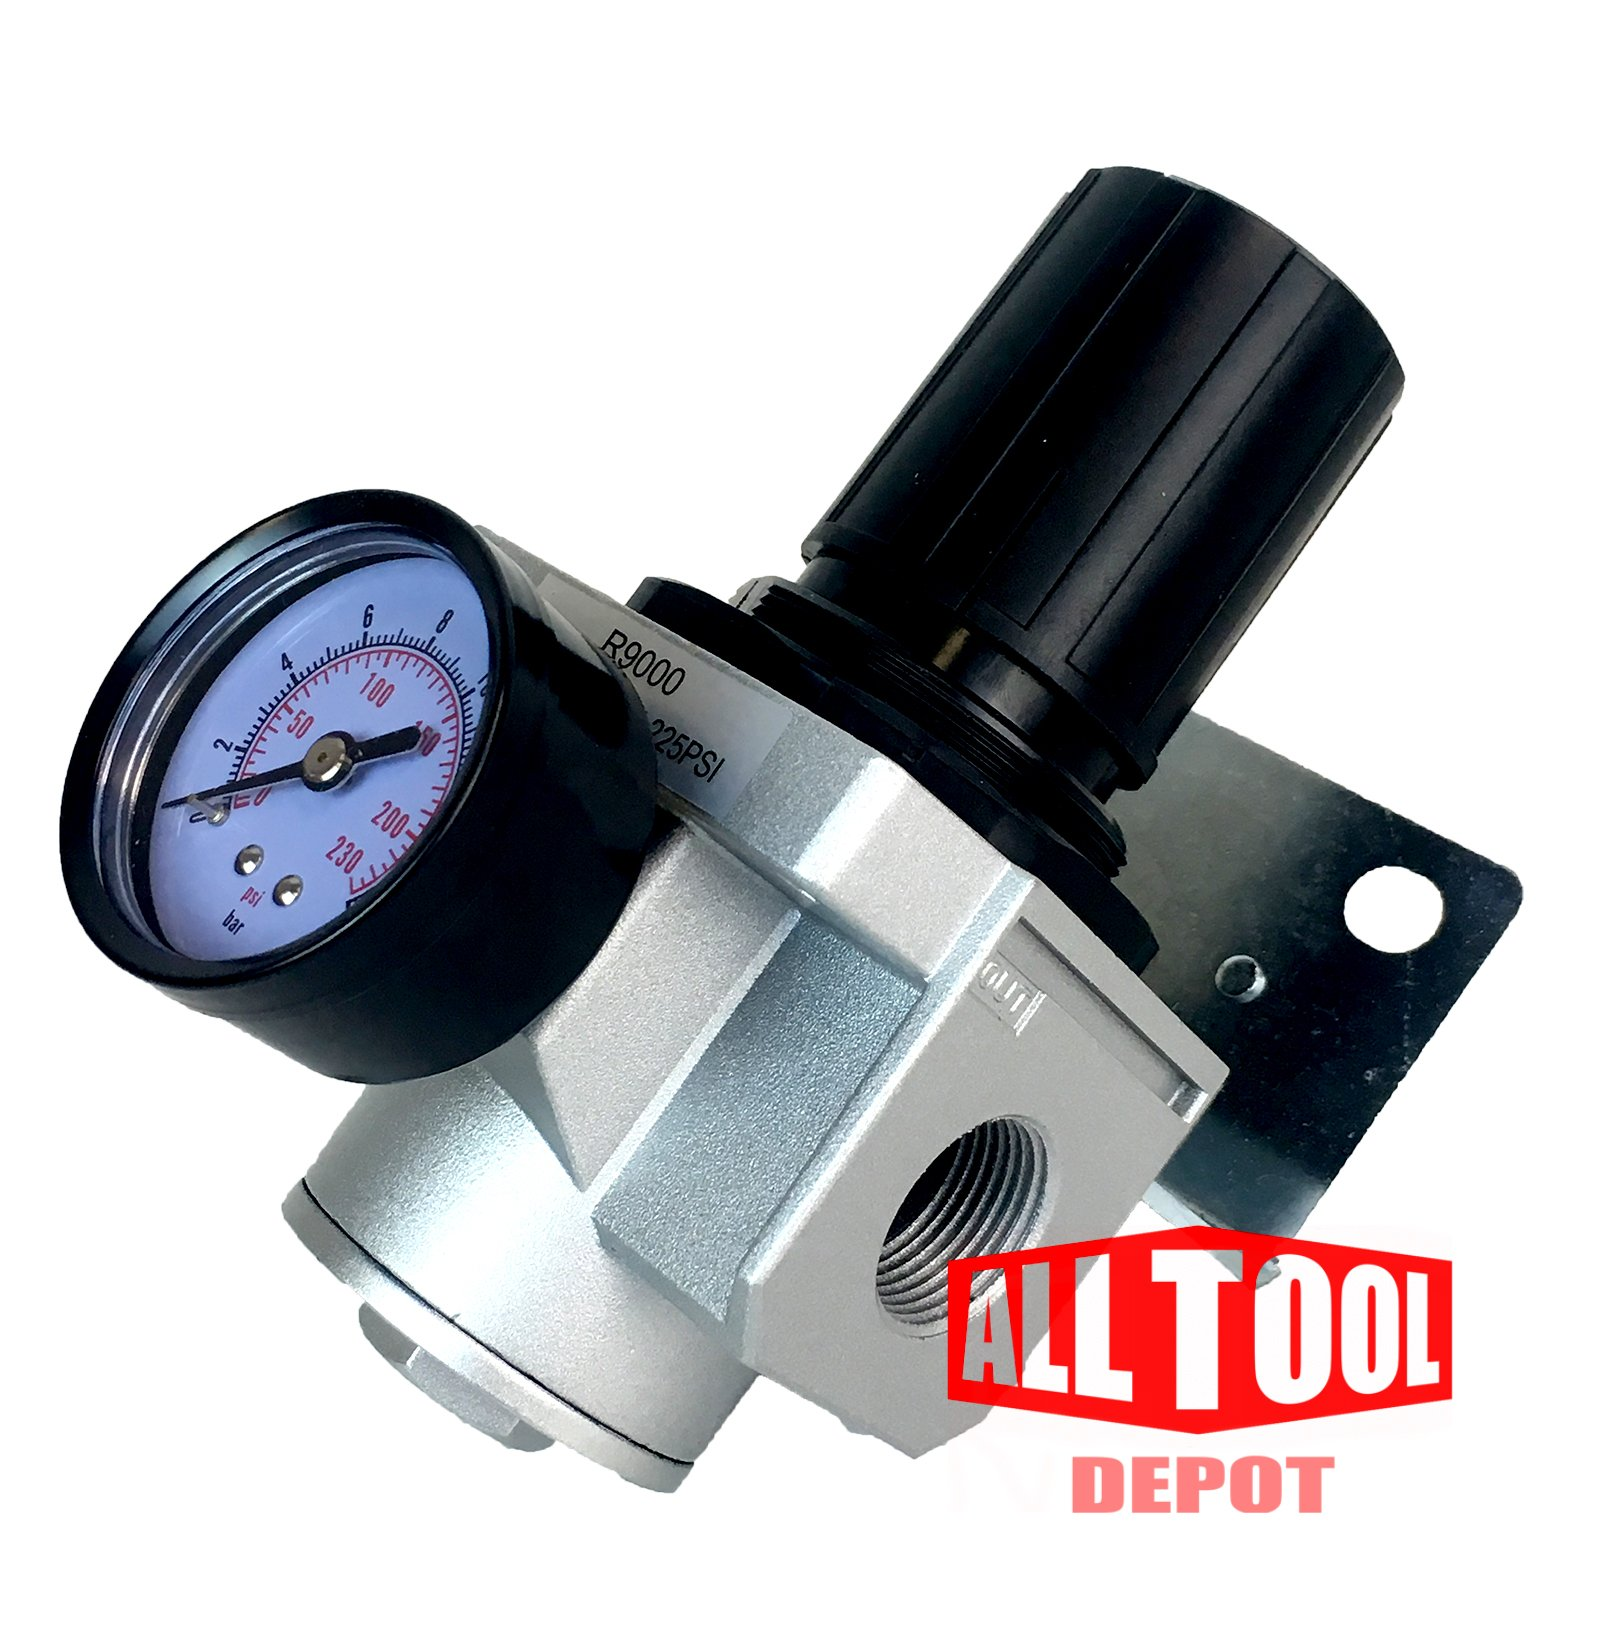 1'' HEAVY DUTY HIGH FLOW IN-LINE COMPRESSED AIR PRESSURE REGULATOR 180 CFM